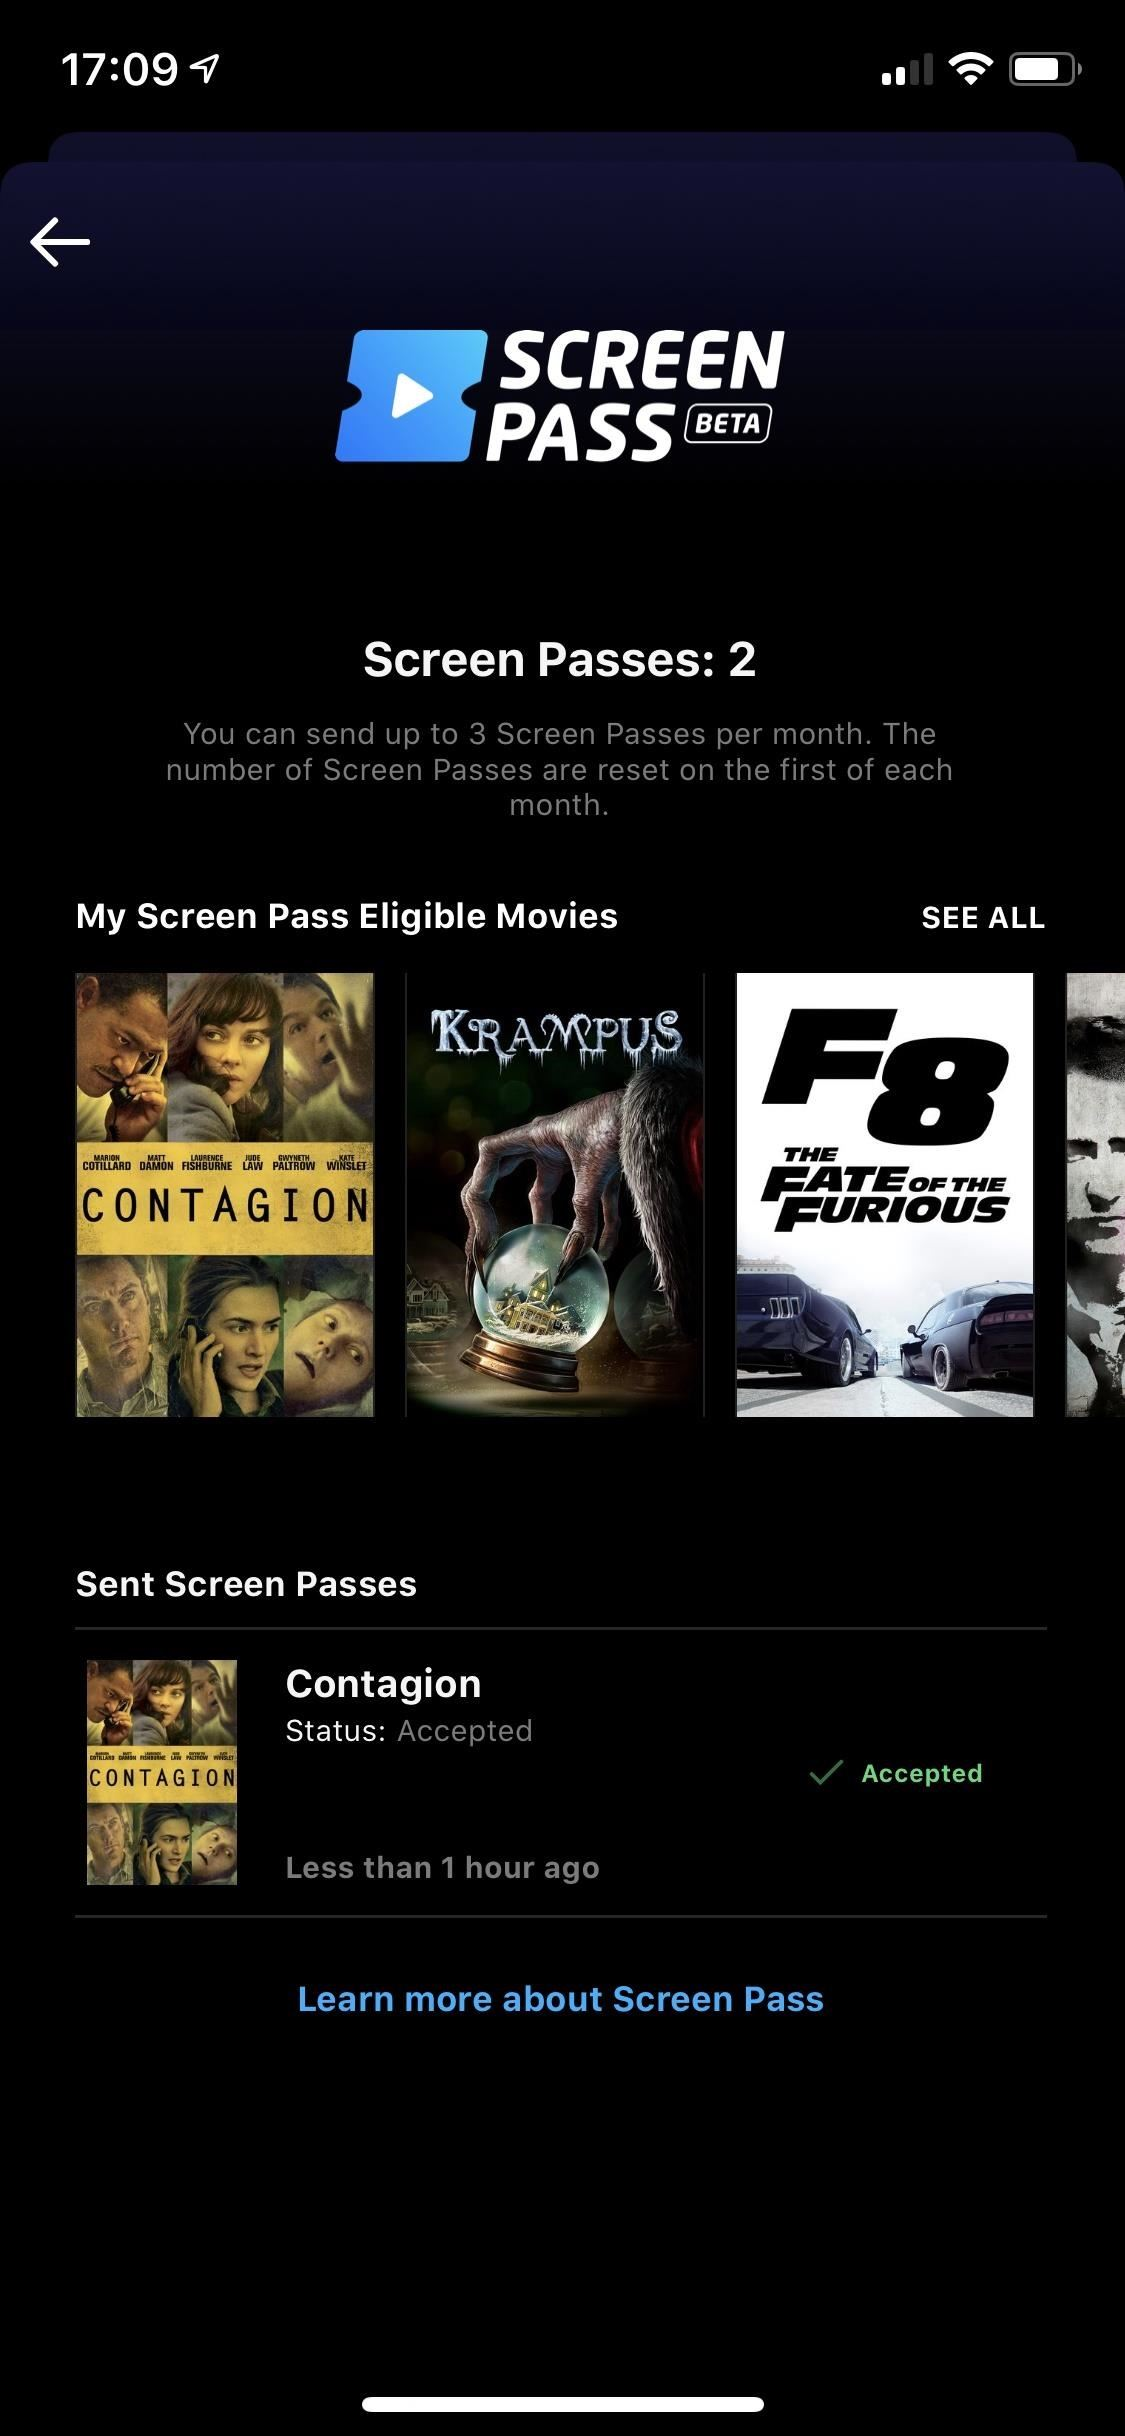 Own a Ton of Digital Movies? Let Others Watch Them for Free with Screen Passes